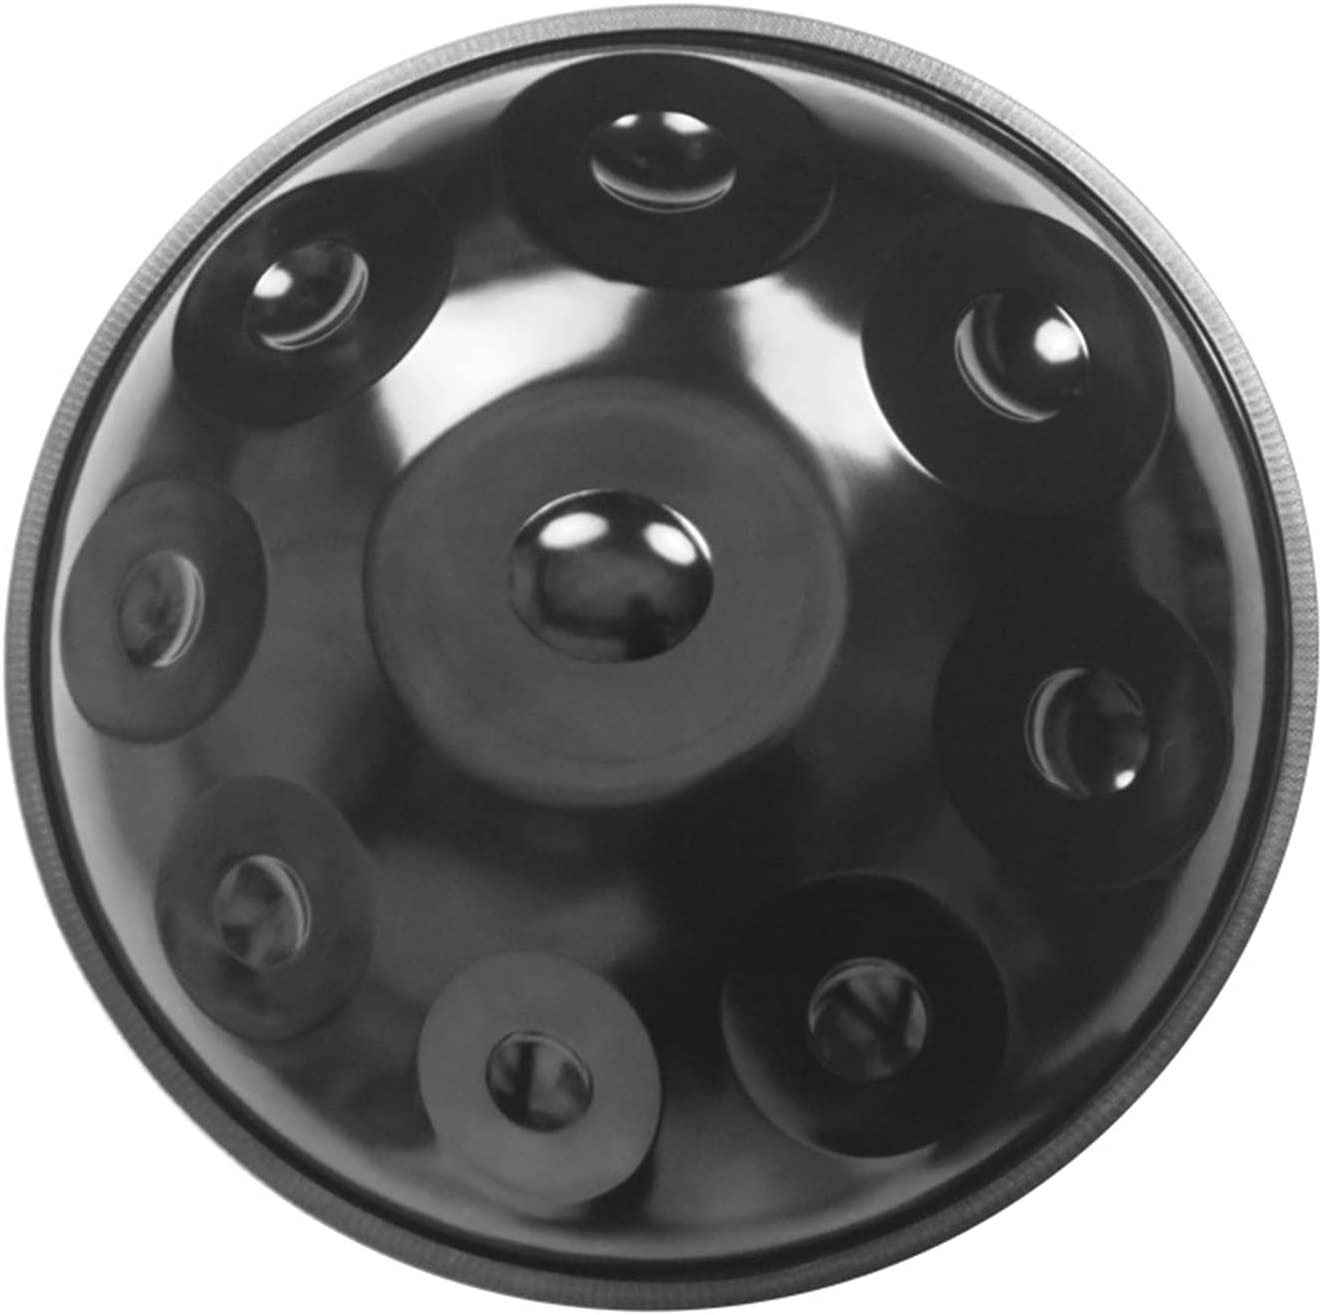 Handpan Drum Tongue 22 Inch Hand Black 9 Super special price minor Notes D Sales of SALE items from new works